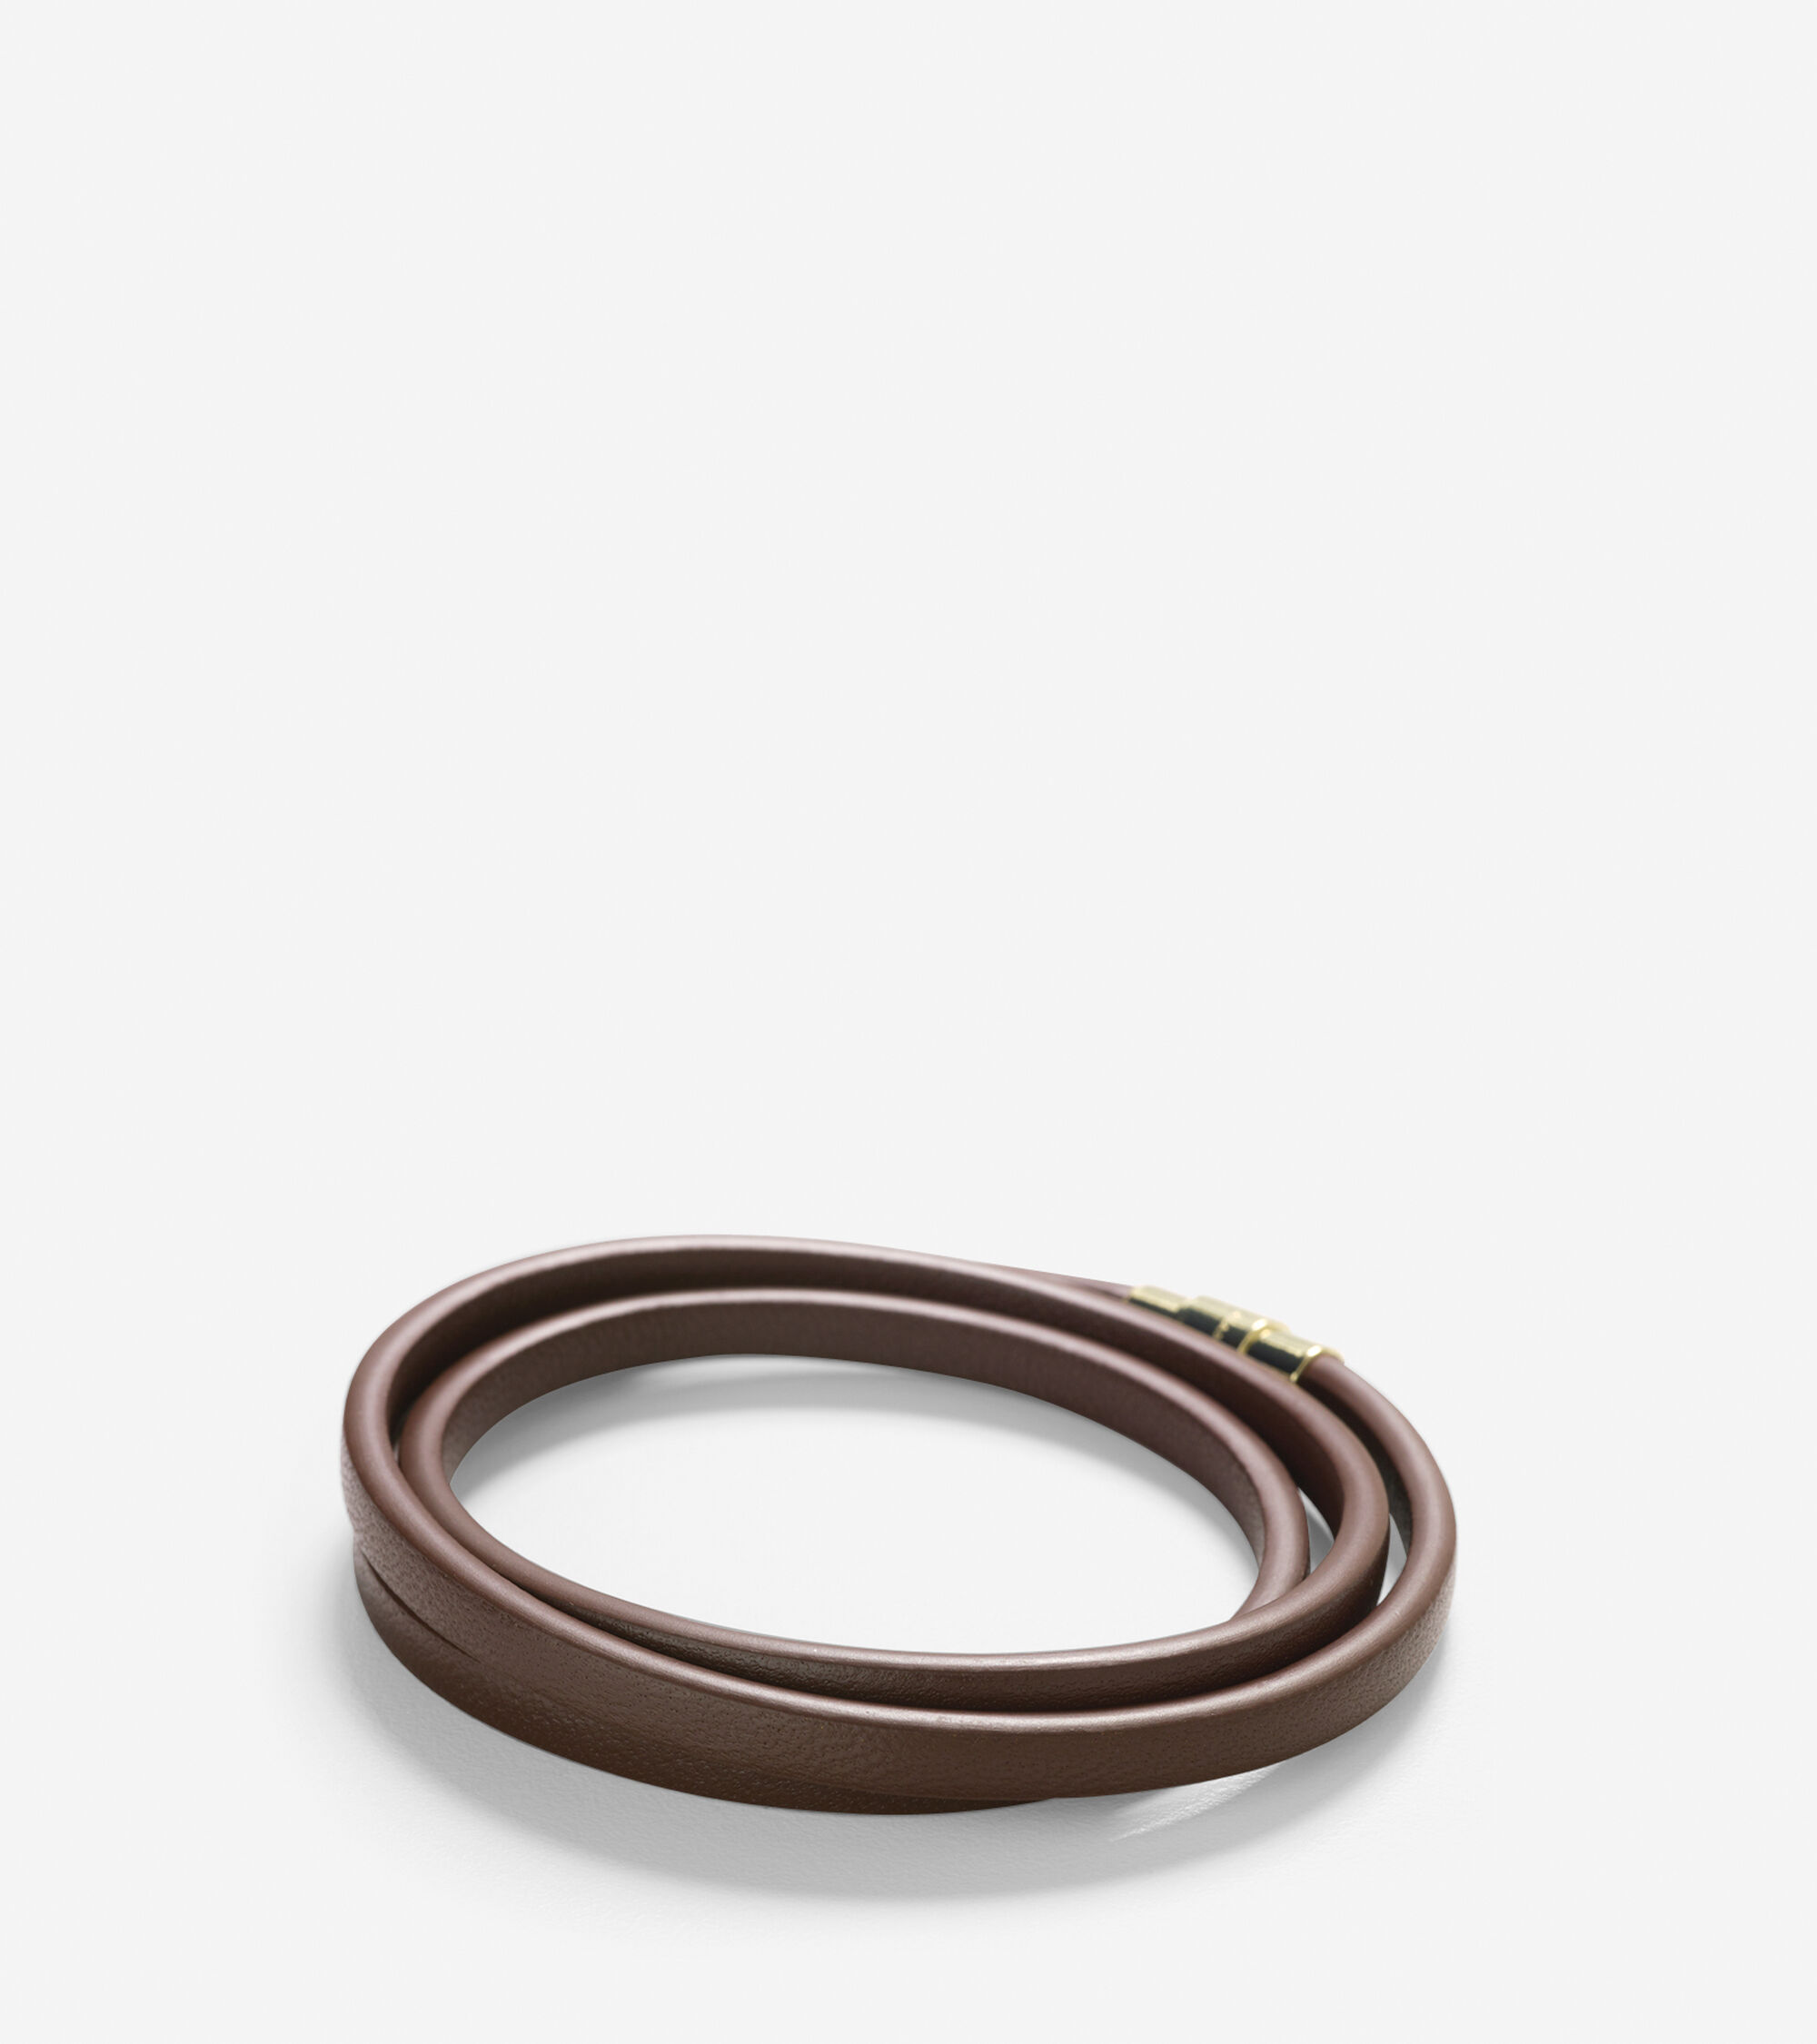 Accessories > Thin Leather Strap Bracelet With Magnet Closure